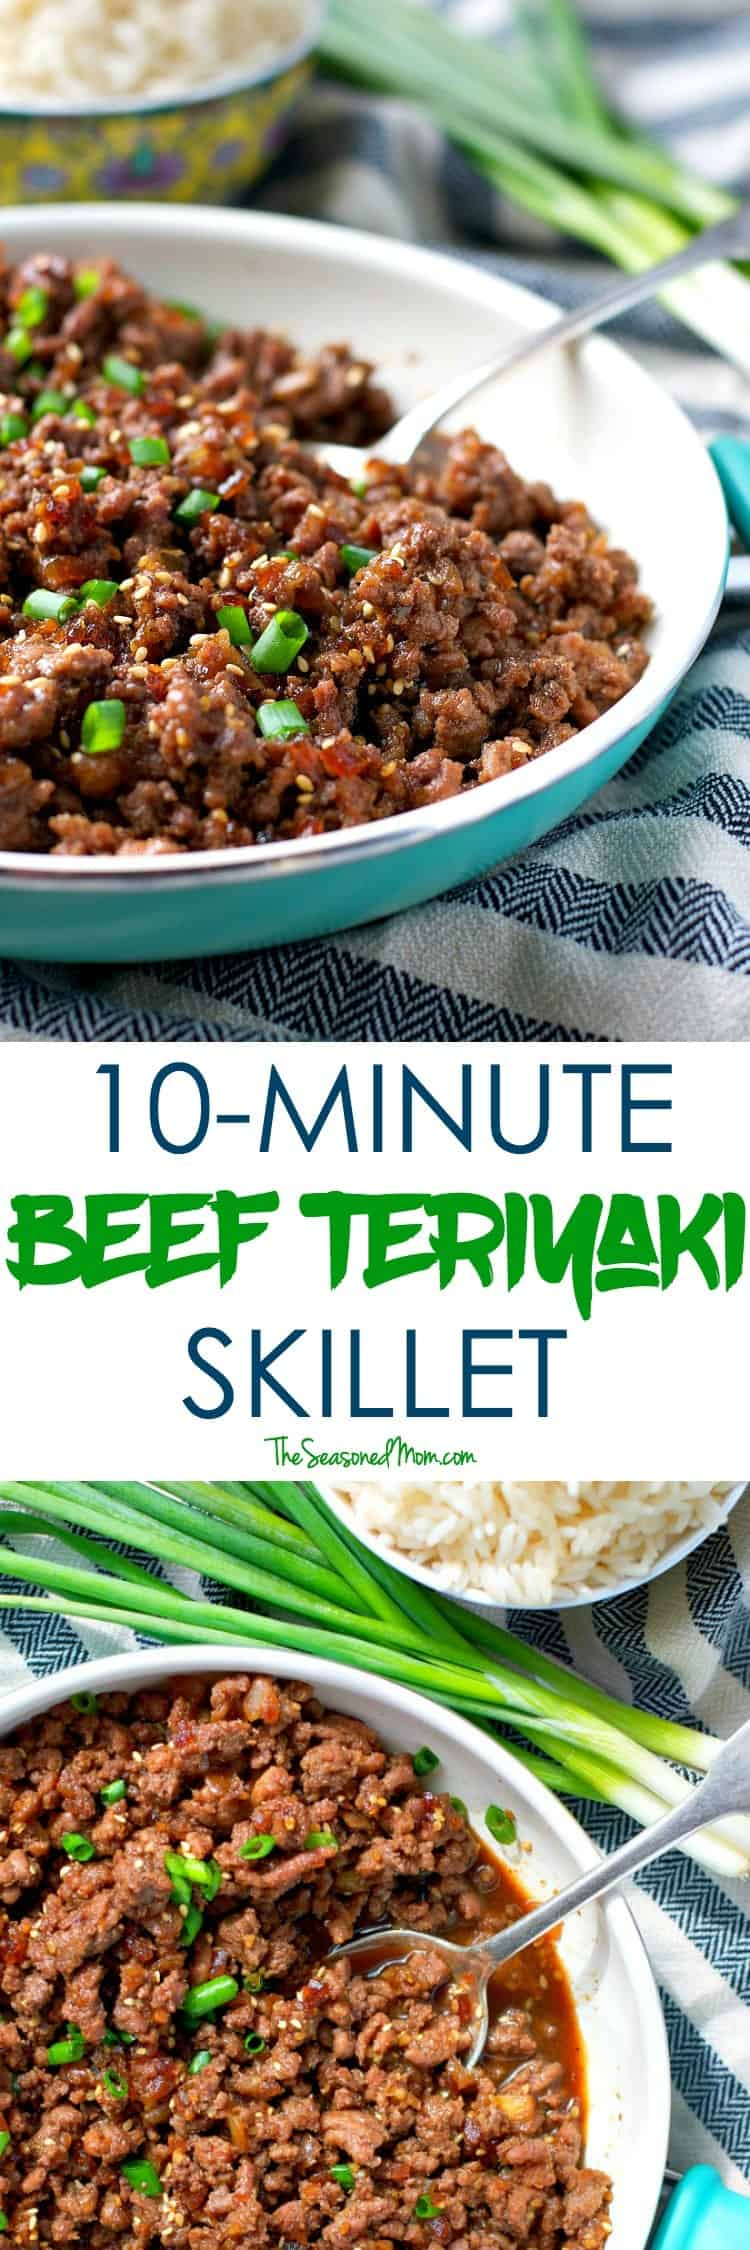 You only need 5 ingredients and about 10 minutes to pull together an easy Beef Teriyaki Skillet dinner that will rock your over-scheduled-world!